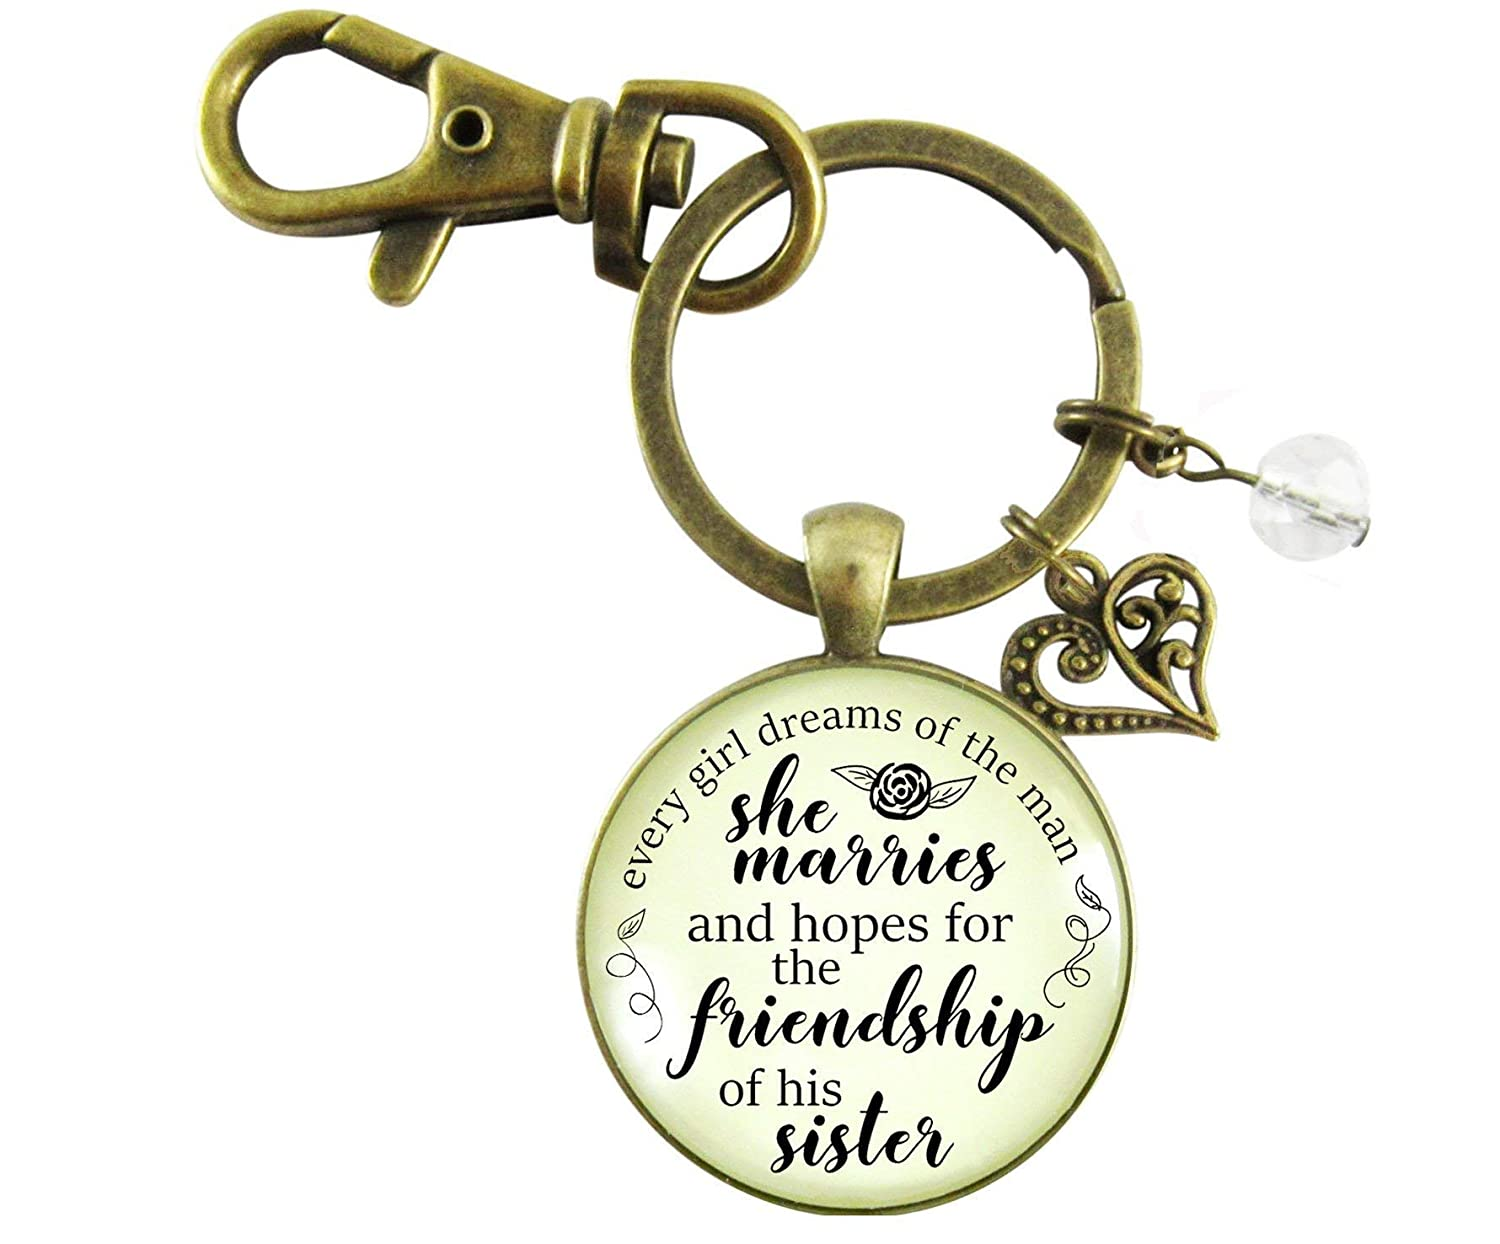 Sister-In-Law Keychain Every Girl Dreams New Sister Inspired Wedding Day Gift From Bride Family Jewelry Gift